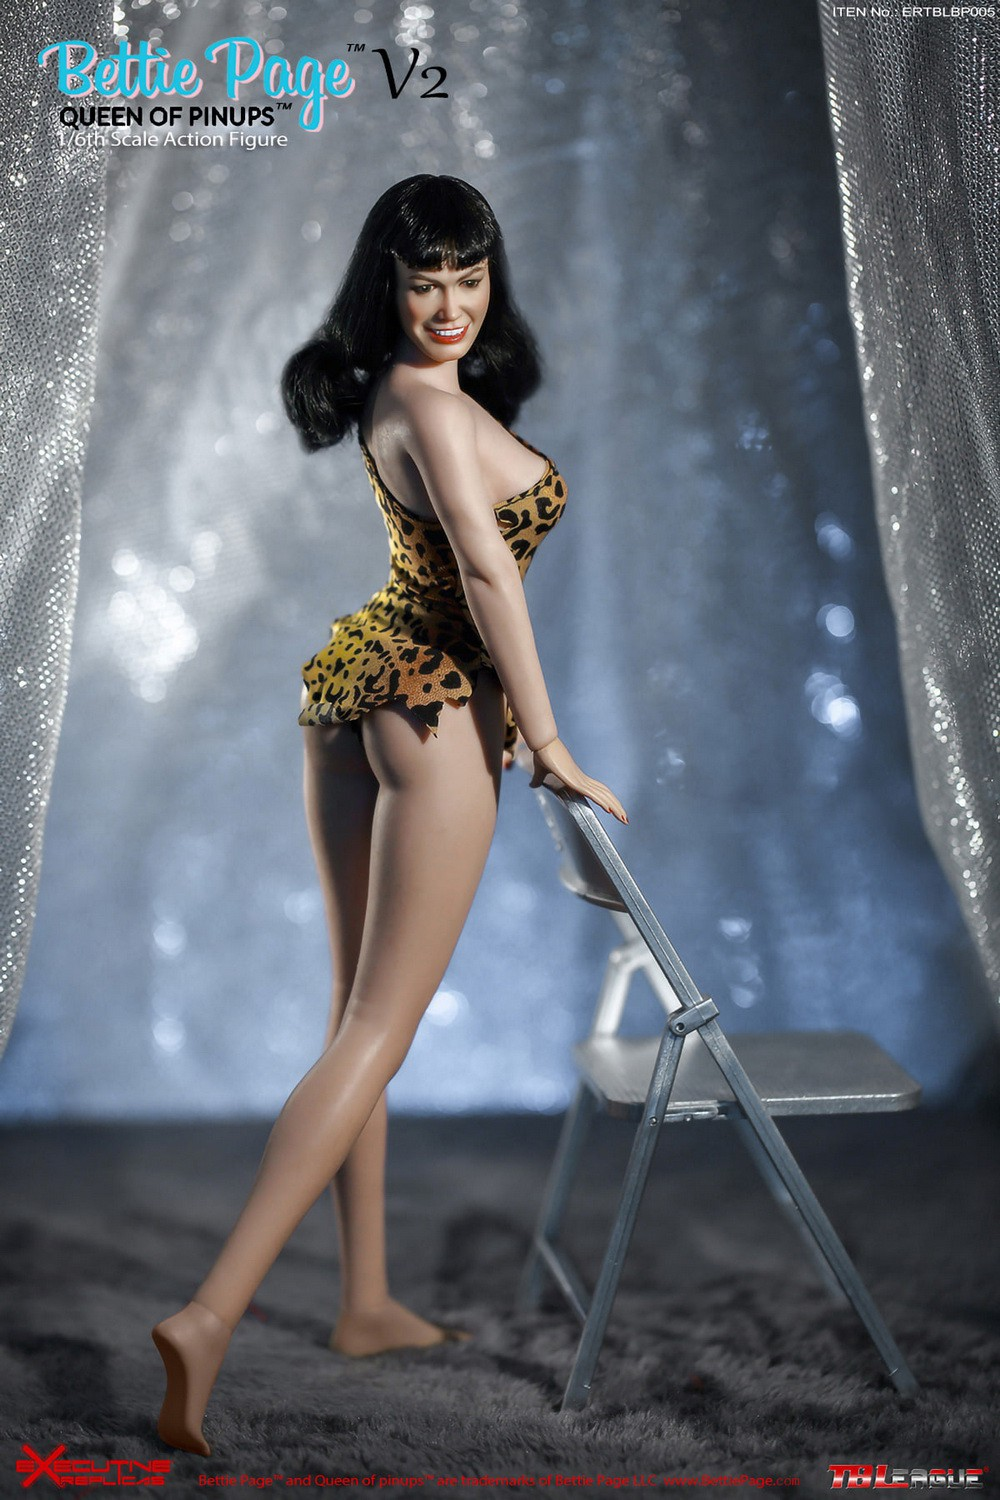 tbleague - NEW PRODUCT: Executive Replicas & TBLeague: 1/6 Queen of Pin-Ups, Betty Page/Bettie Page V2 action figure 08343210